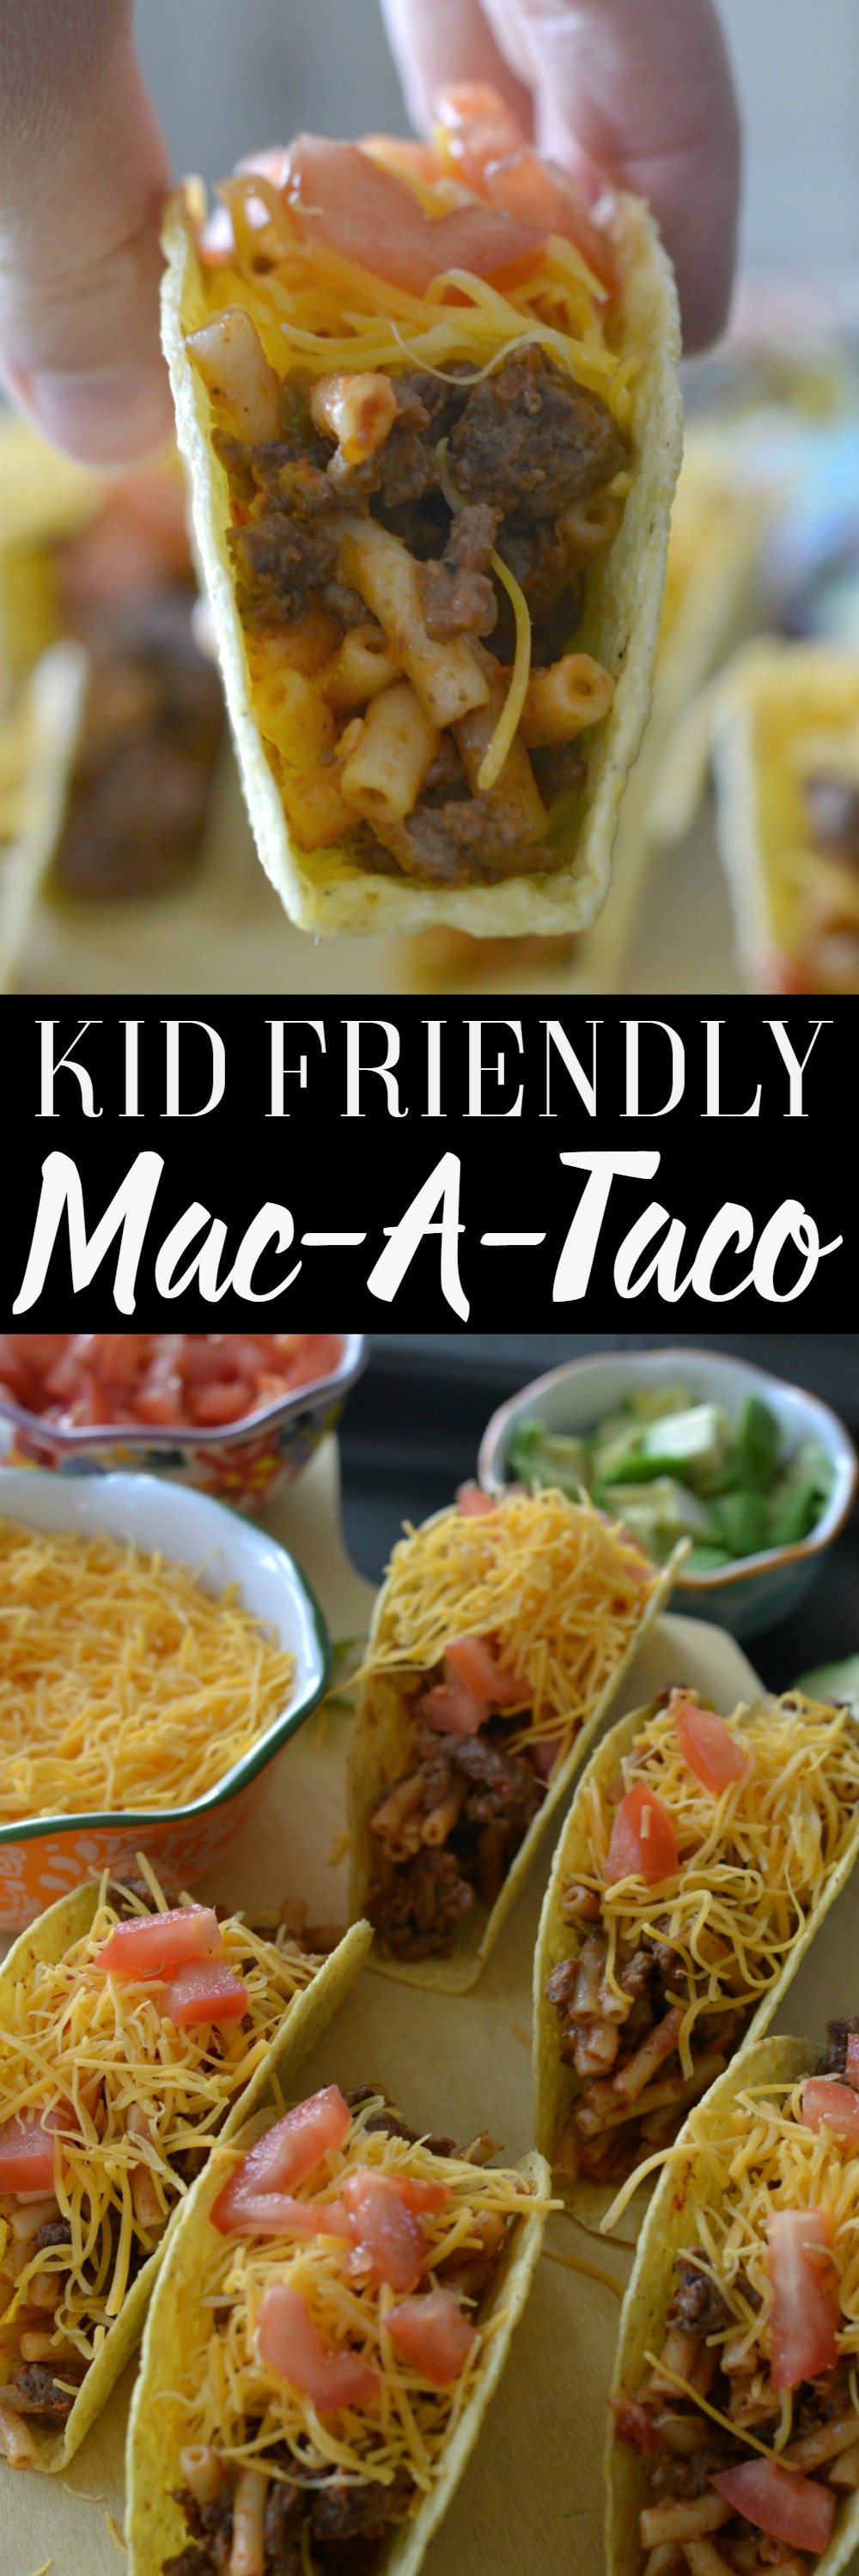 Mac-A-Taco- Macaroni Taco- Kid friendly dinner